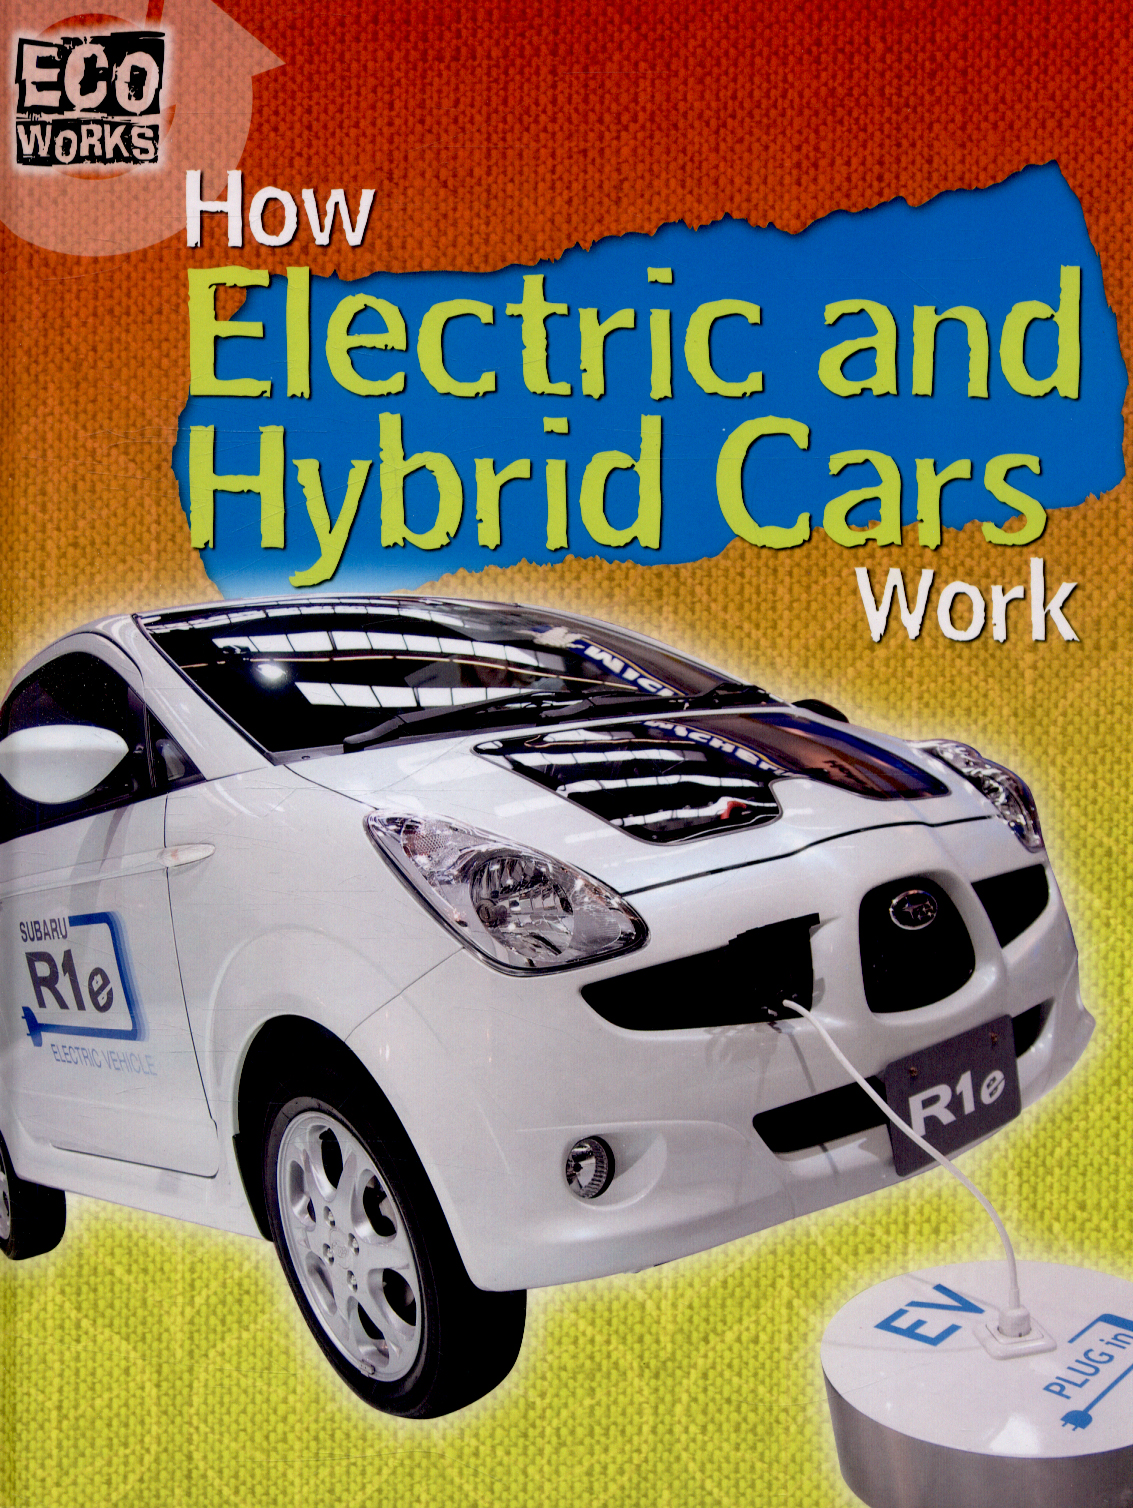 how hybrid cars work wallpapers gallery. Black Bedroom Furniture Sets. Home Design Ideas